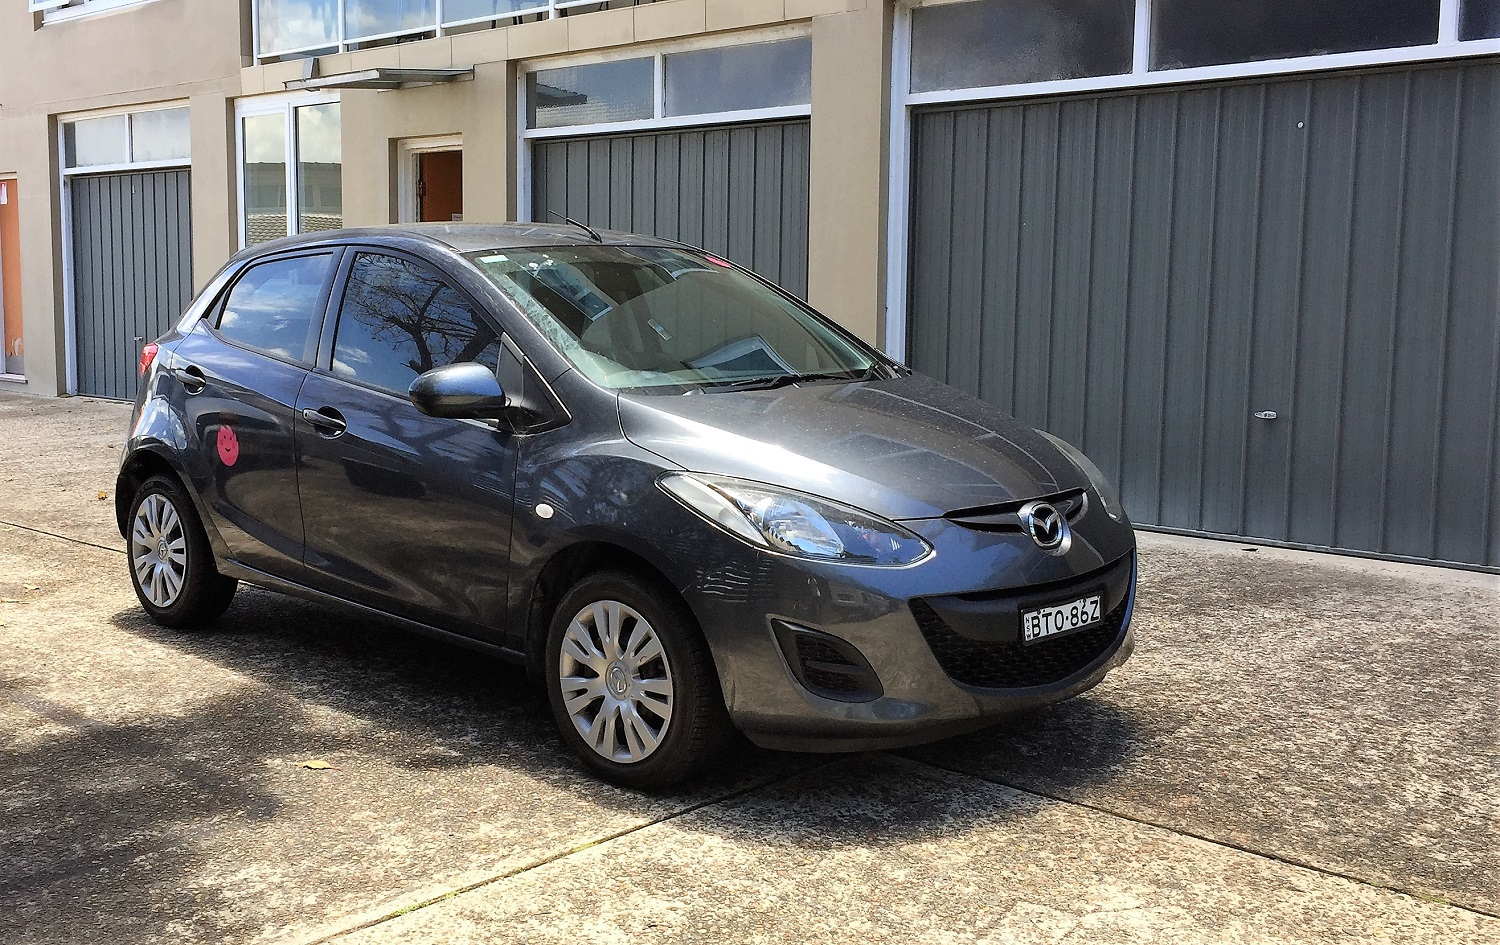 Picture of Brett's 2010 Mazda 2